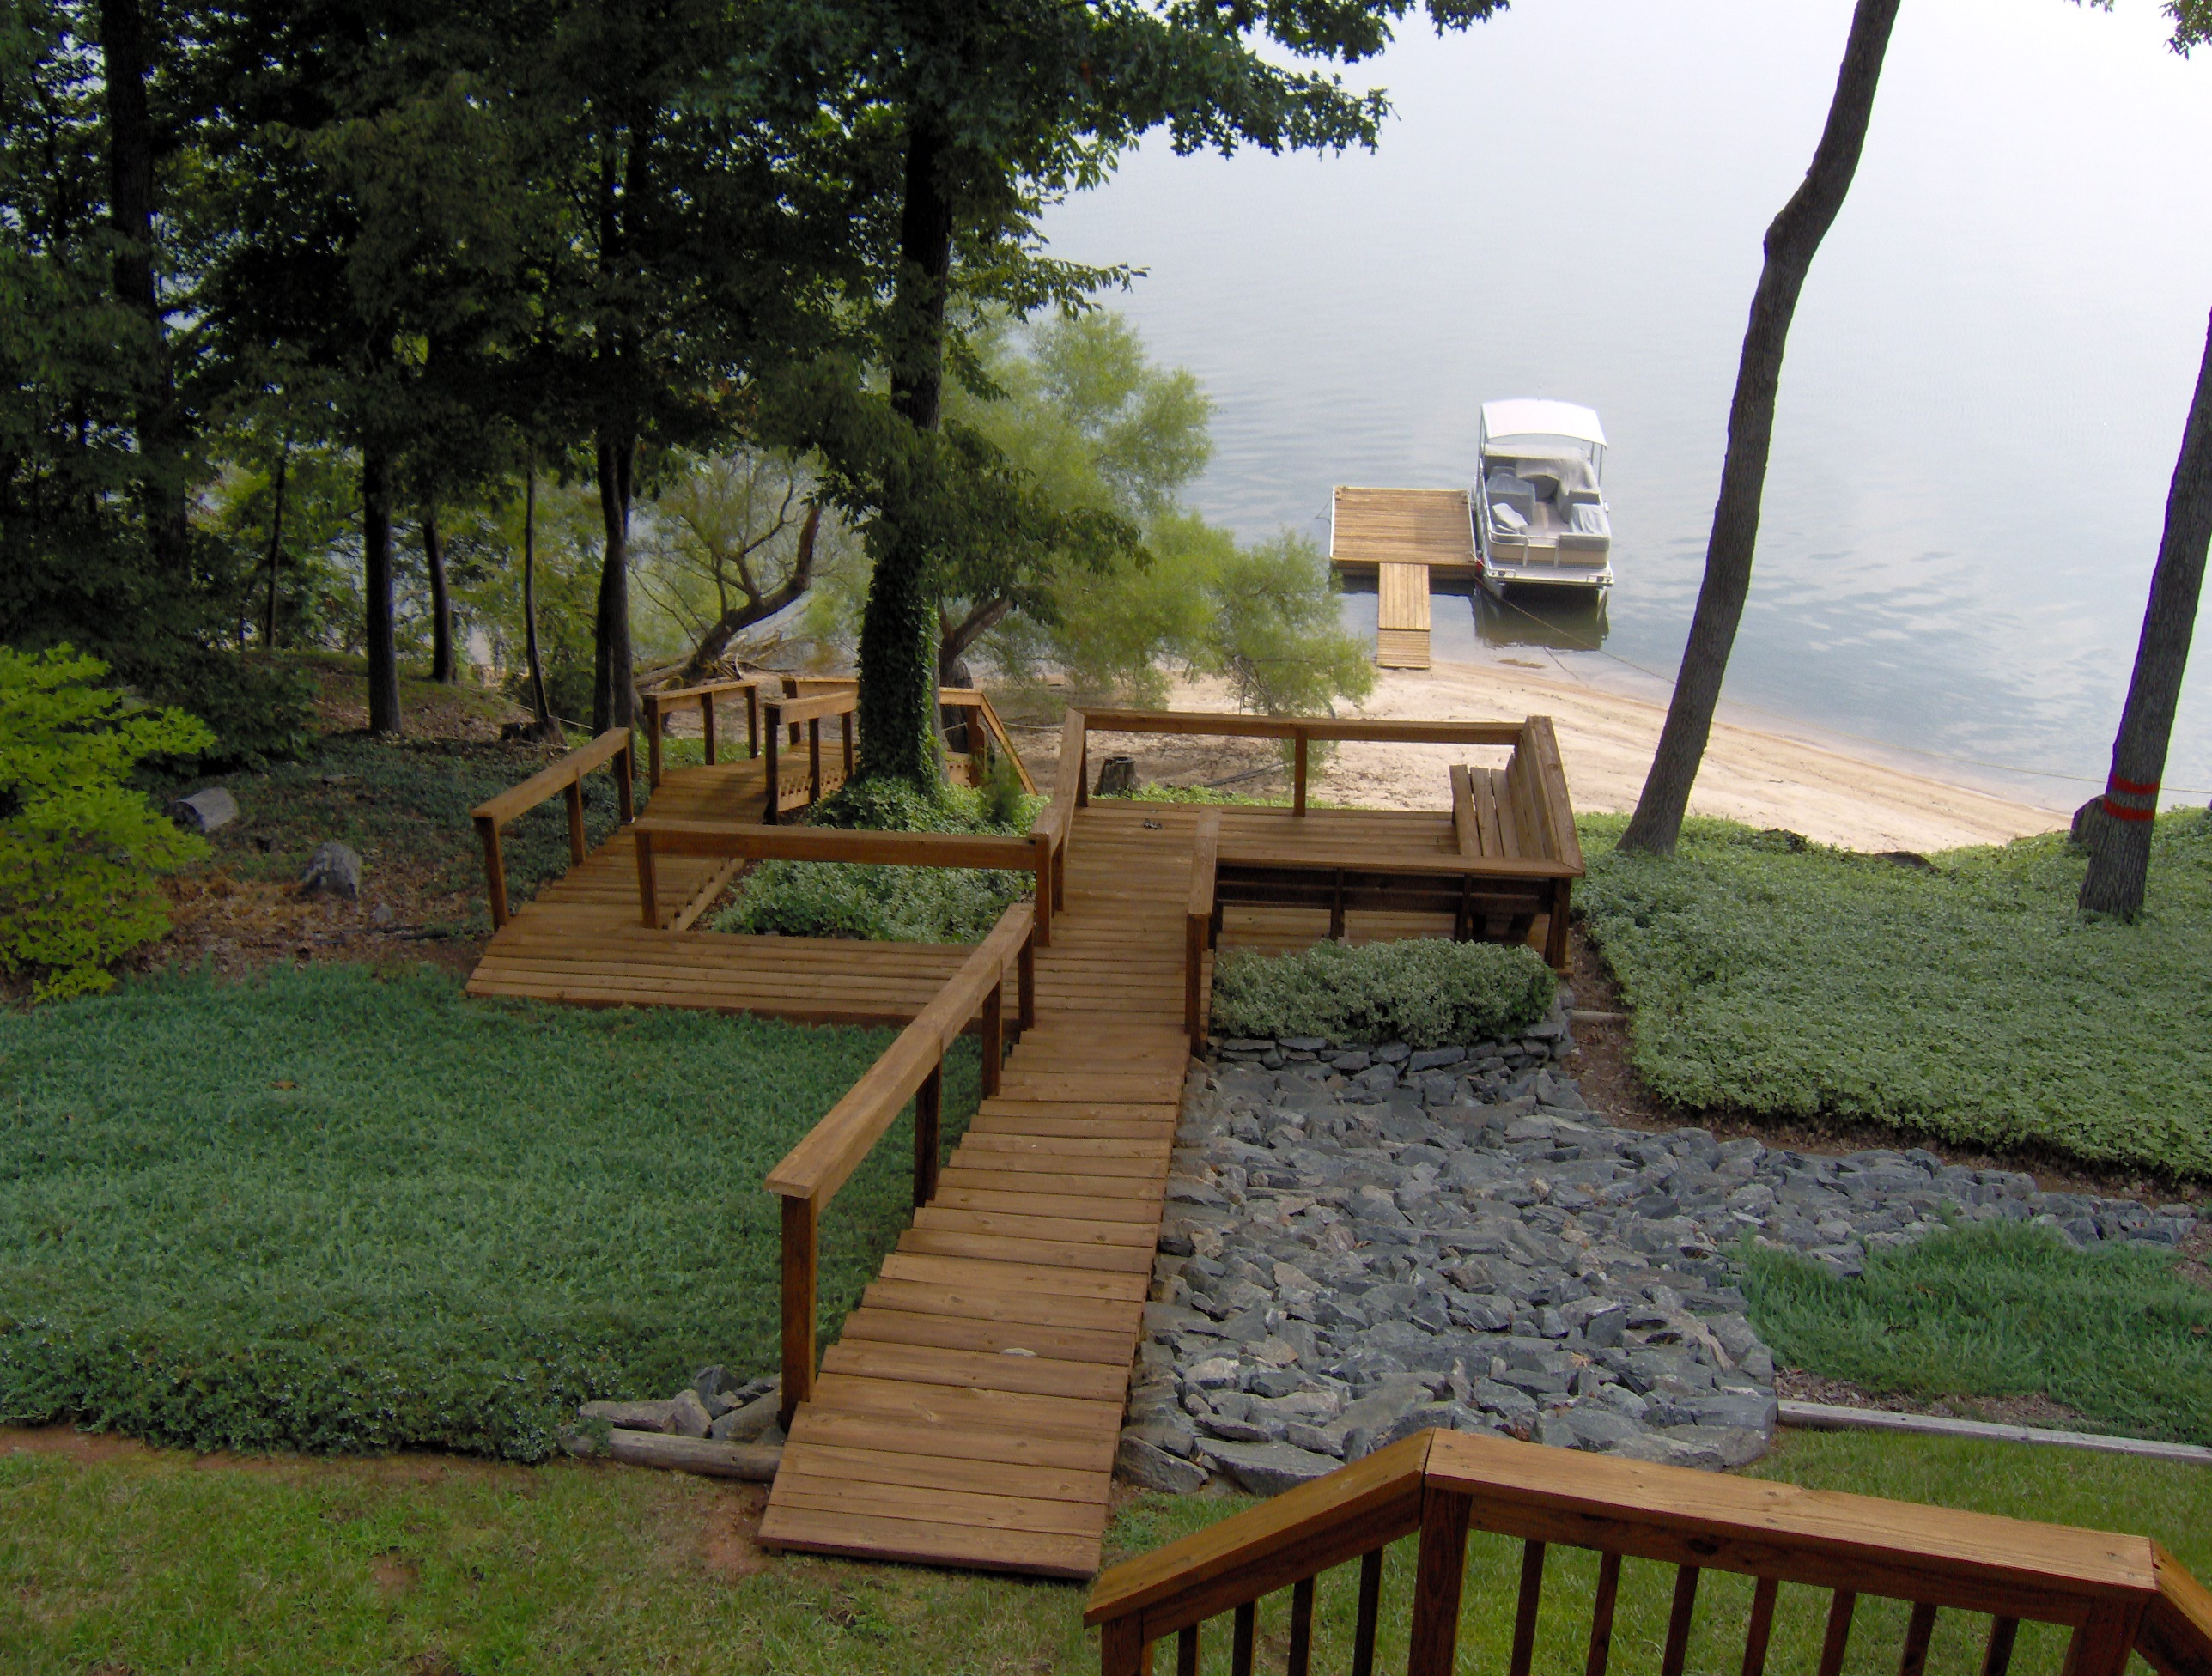 Decks amp Docks Renew Crew Of Lake Gaston Kerr And